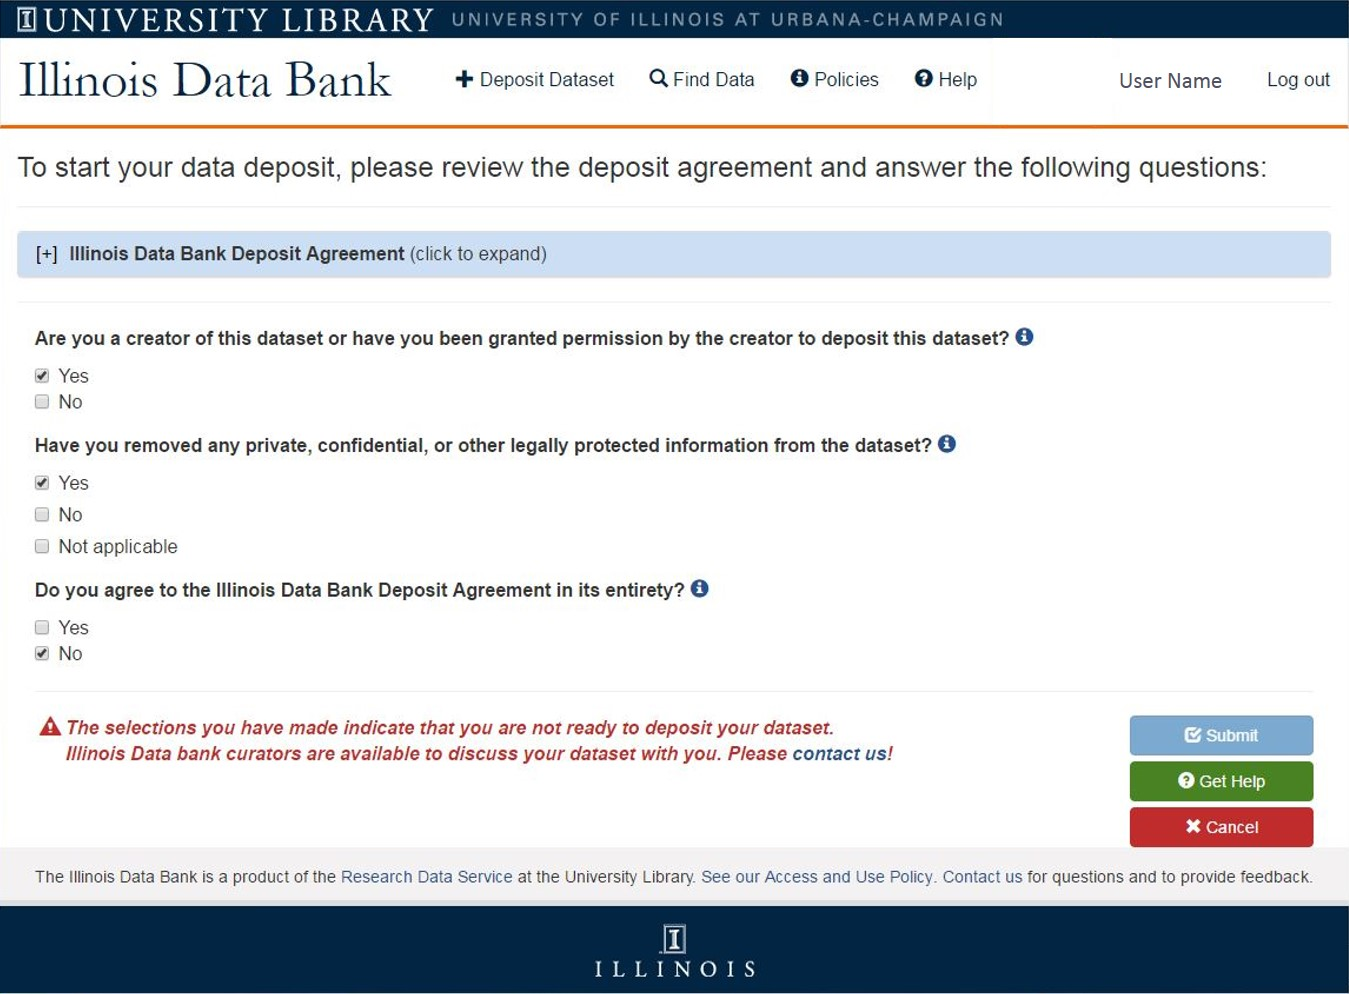 screenshot of deposit upload form